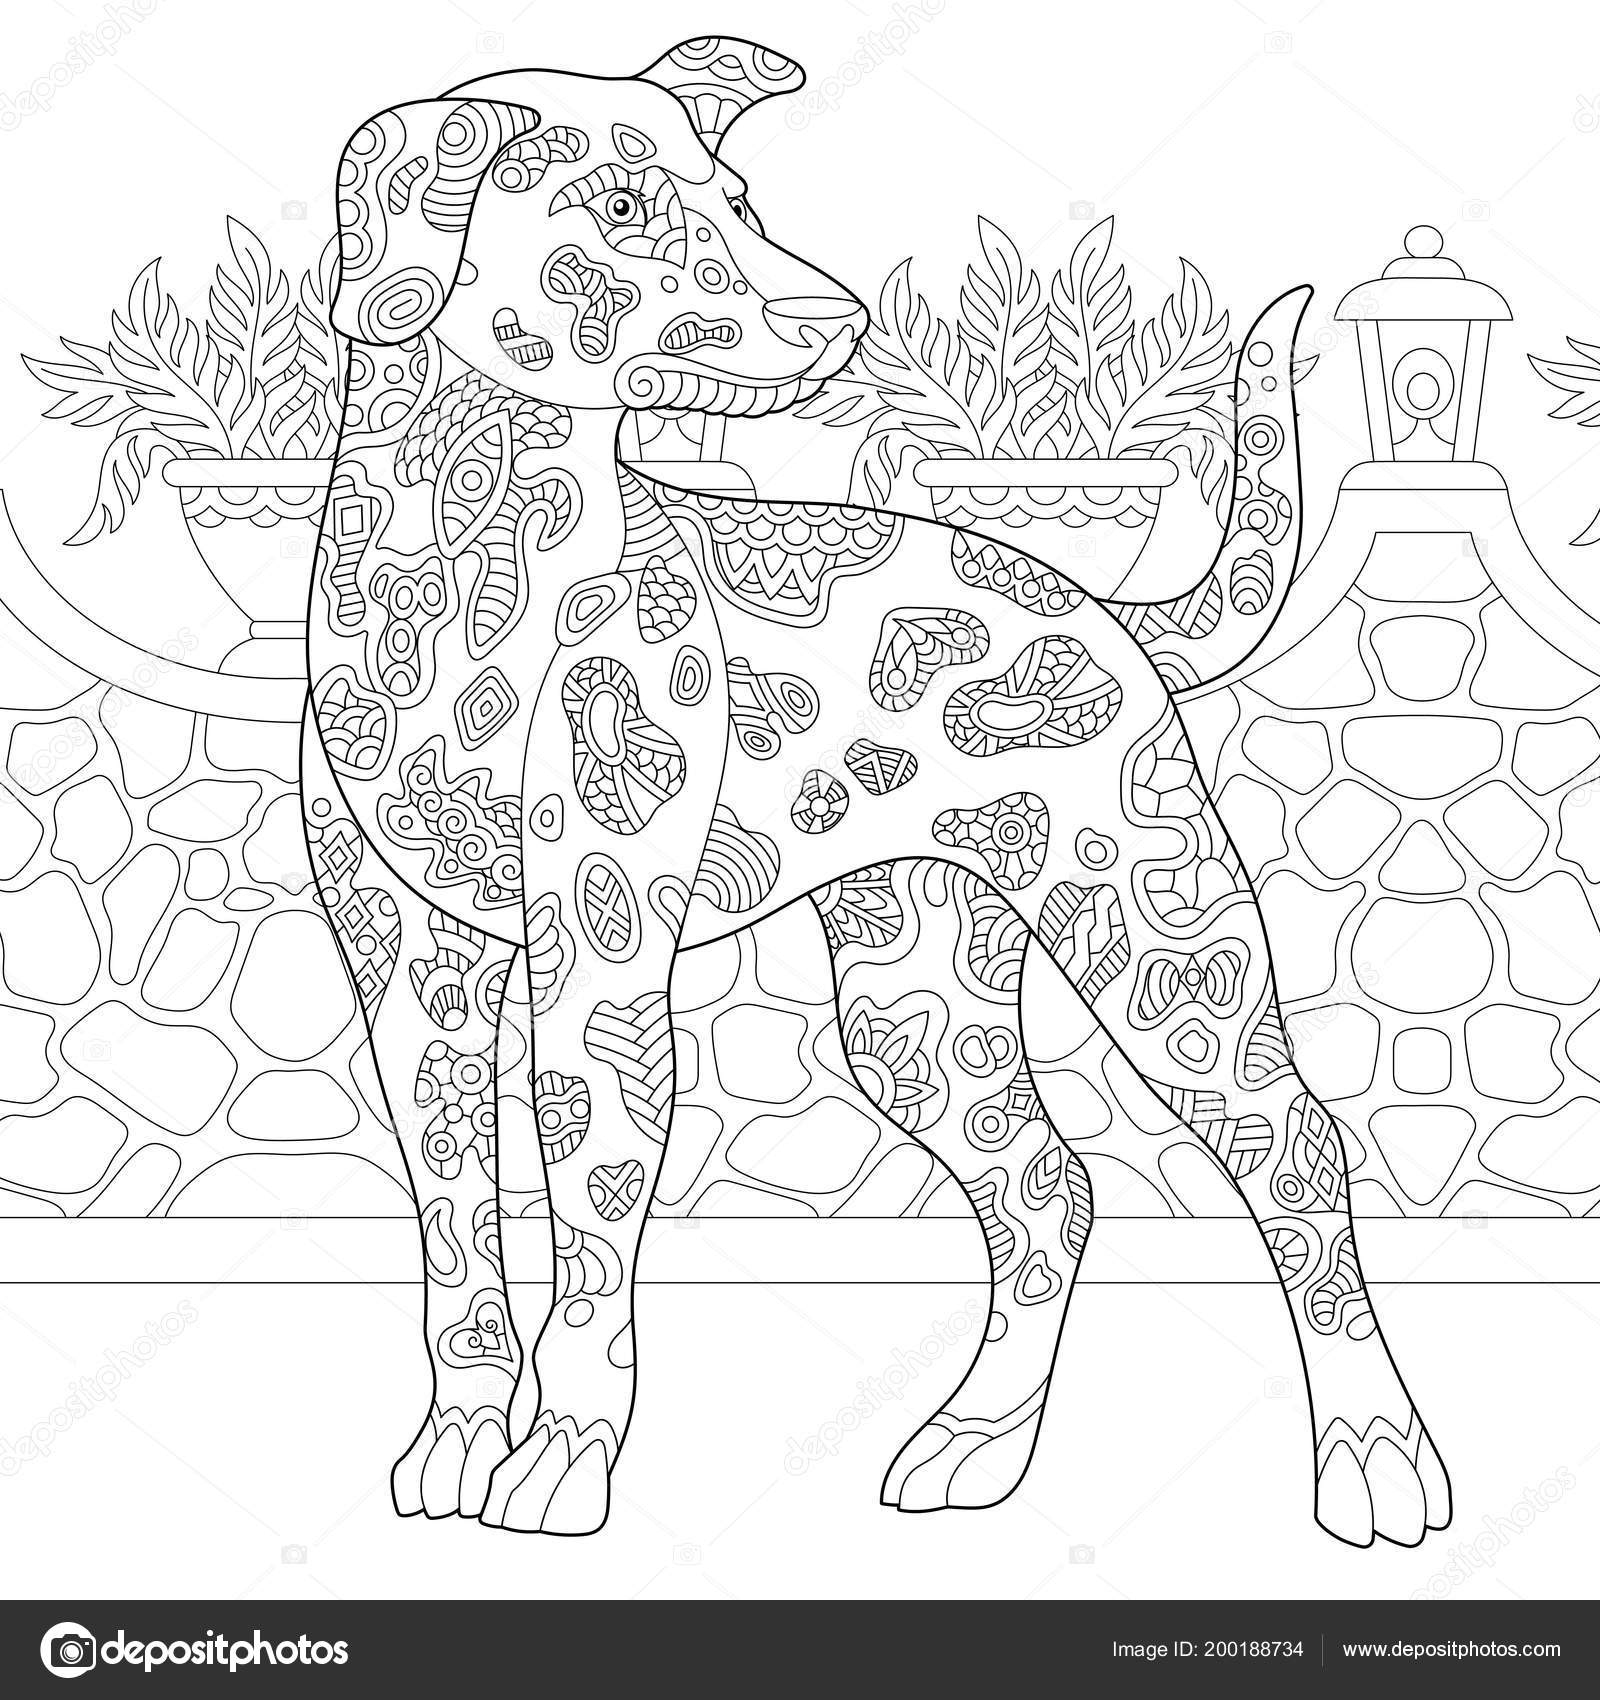 Black And White Cartoon Illustration Of Funny Spotted Puppy Comic ... | 1700x1600